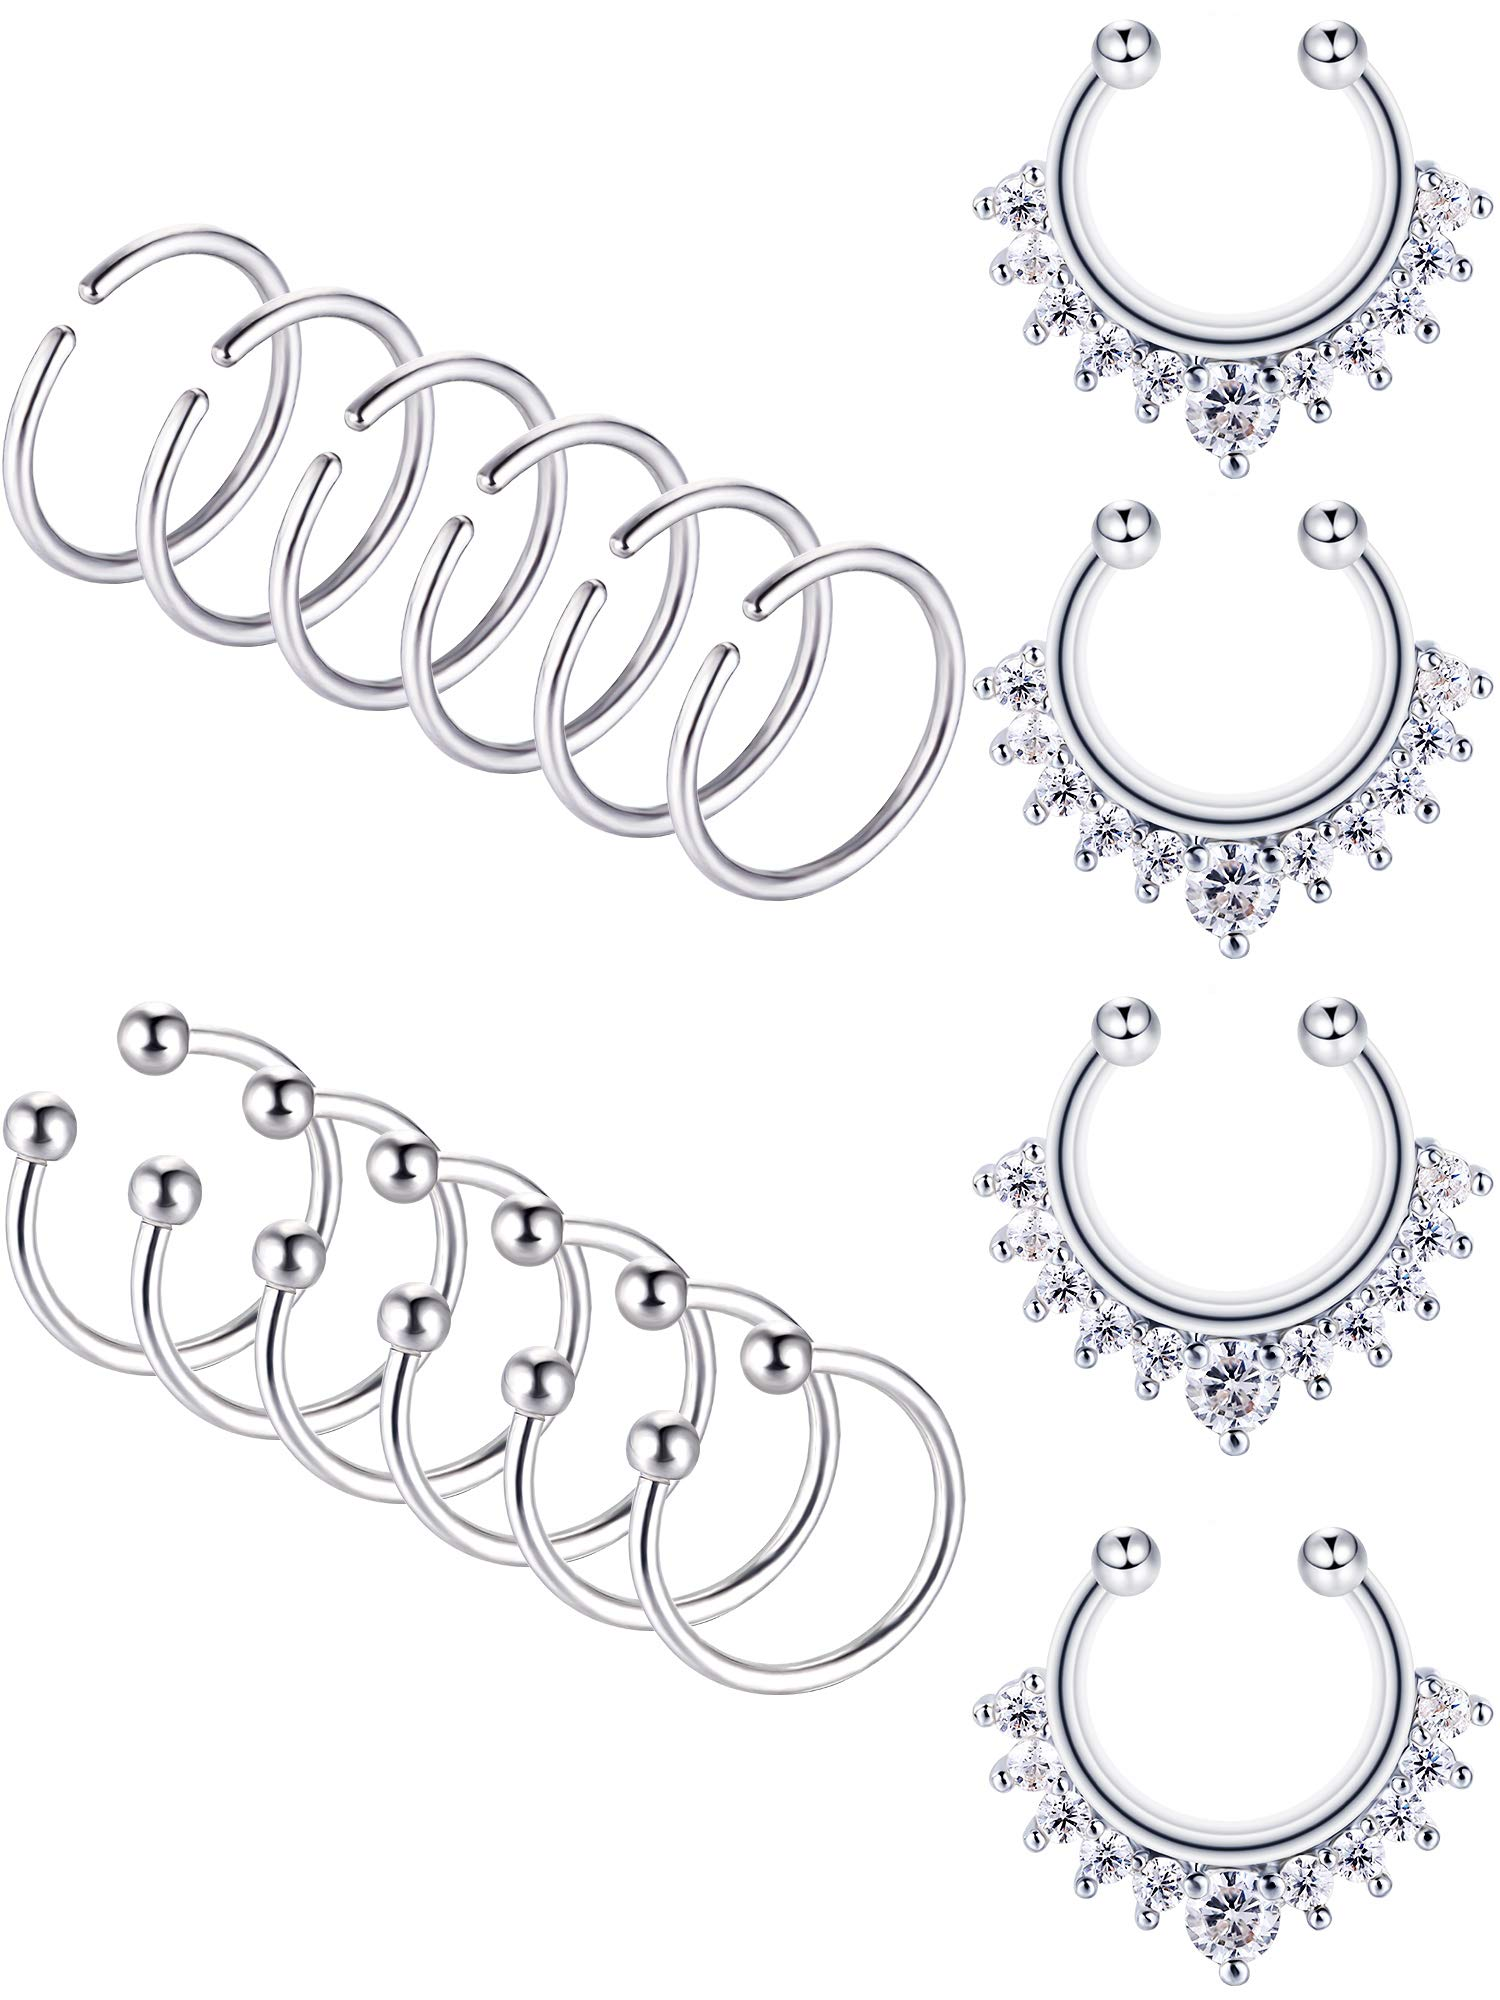 Blulu 16 Pieces 20 G Stainless Steel Nose Hoop Ring Non-piercing Nose Ring Lip Ring Ear Cuff Fake Septum Ring for Body Jewelry, 3 Styles (steel) by Blulu